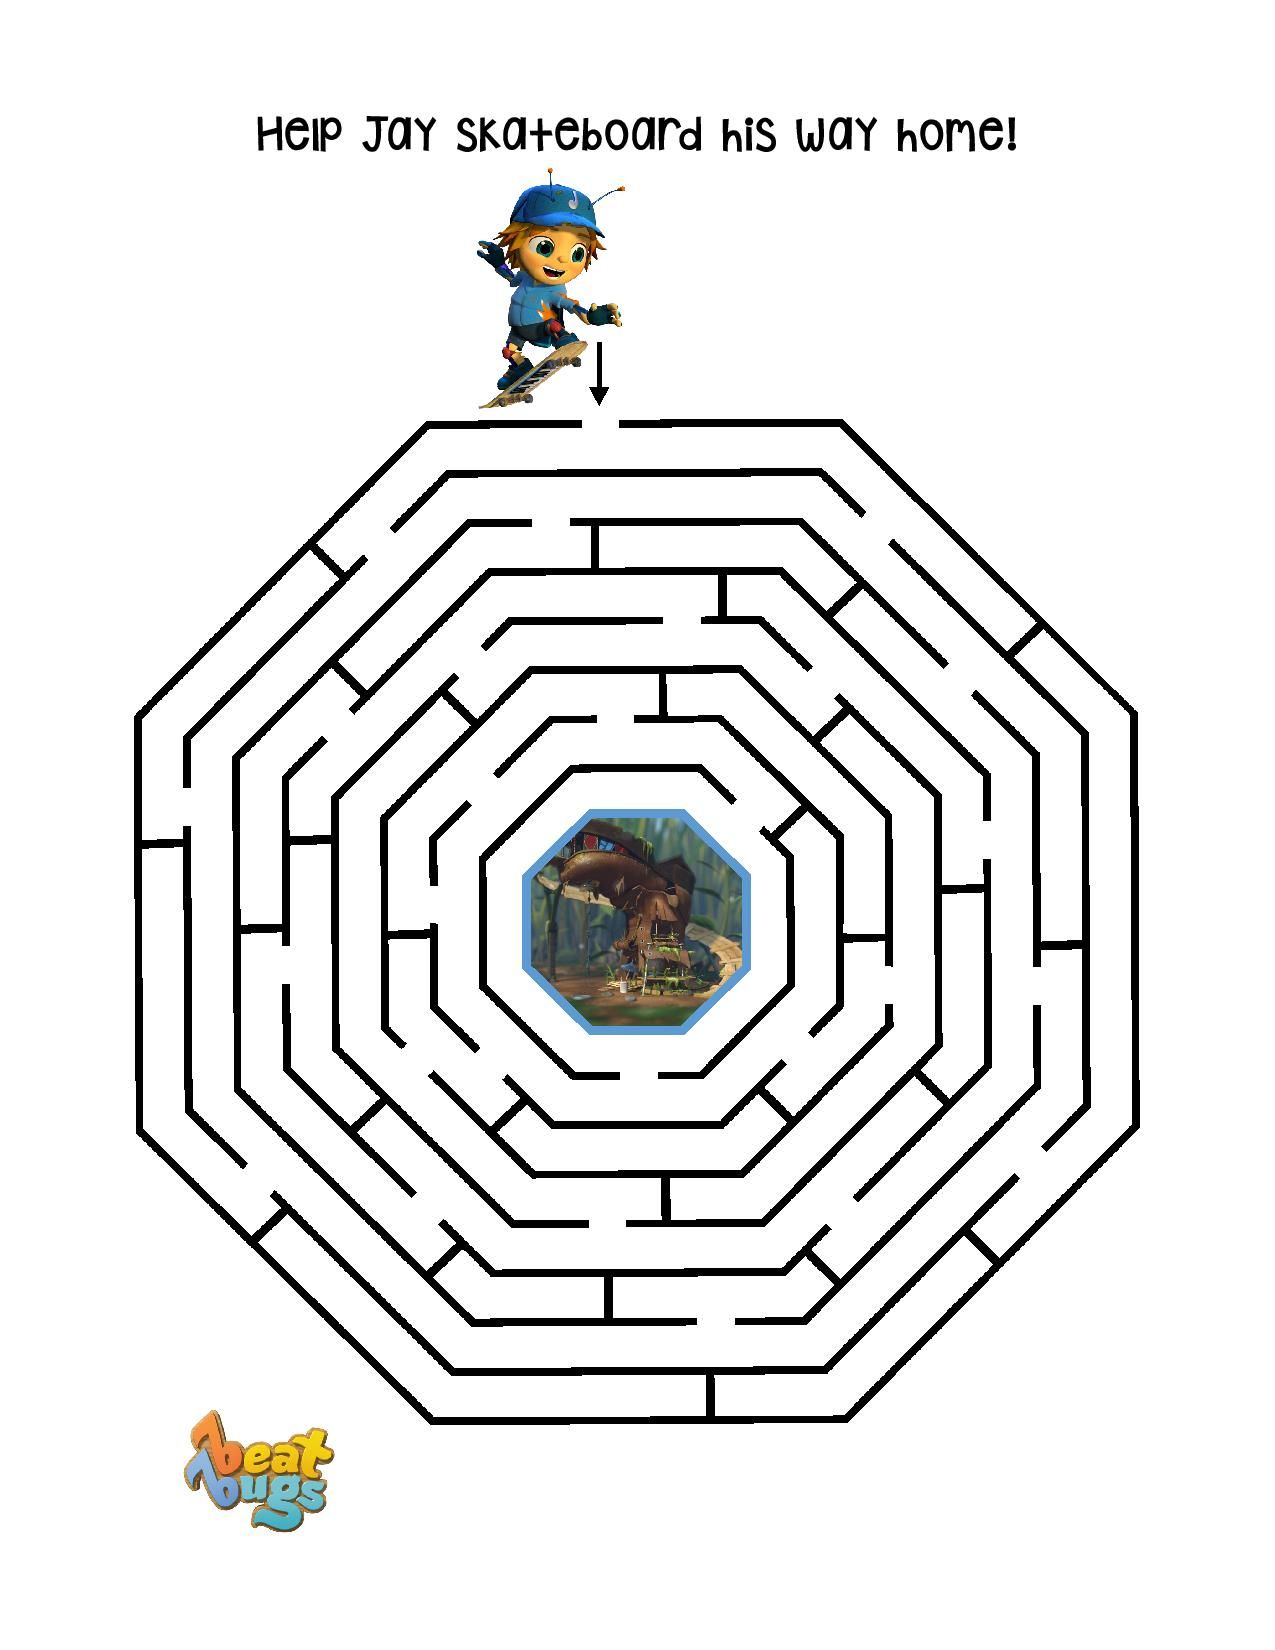 Help Jay Make His Way Home With This Fun Beat Bugs Maze